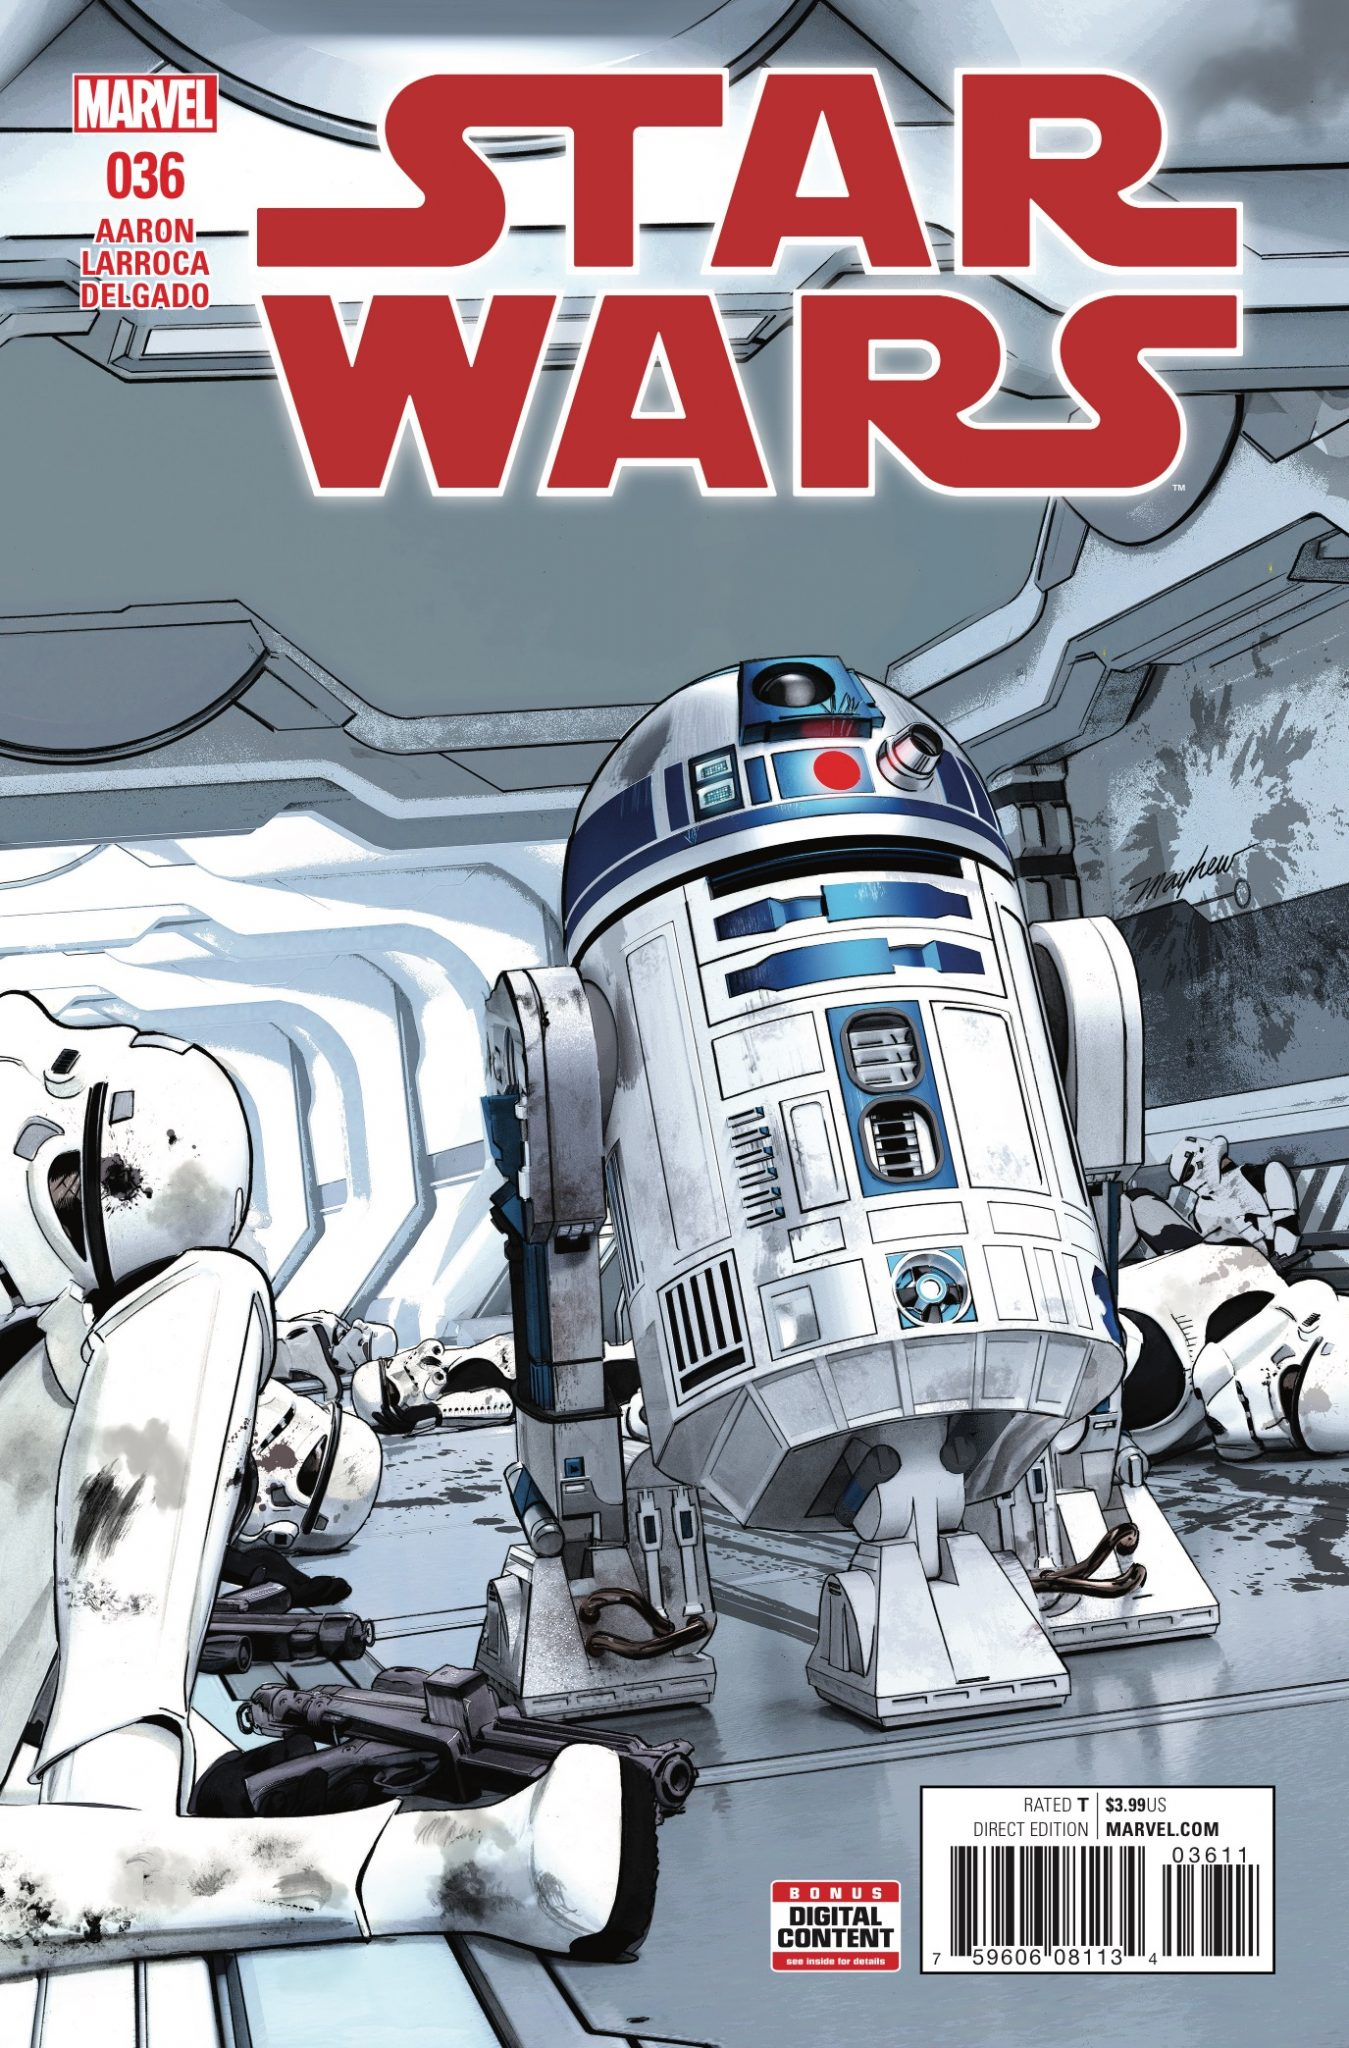 Star Wars #36 Review